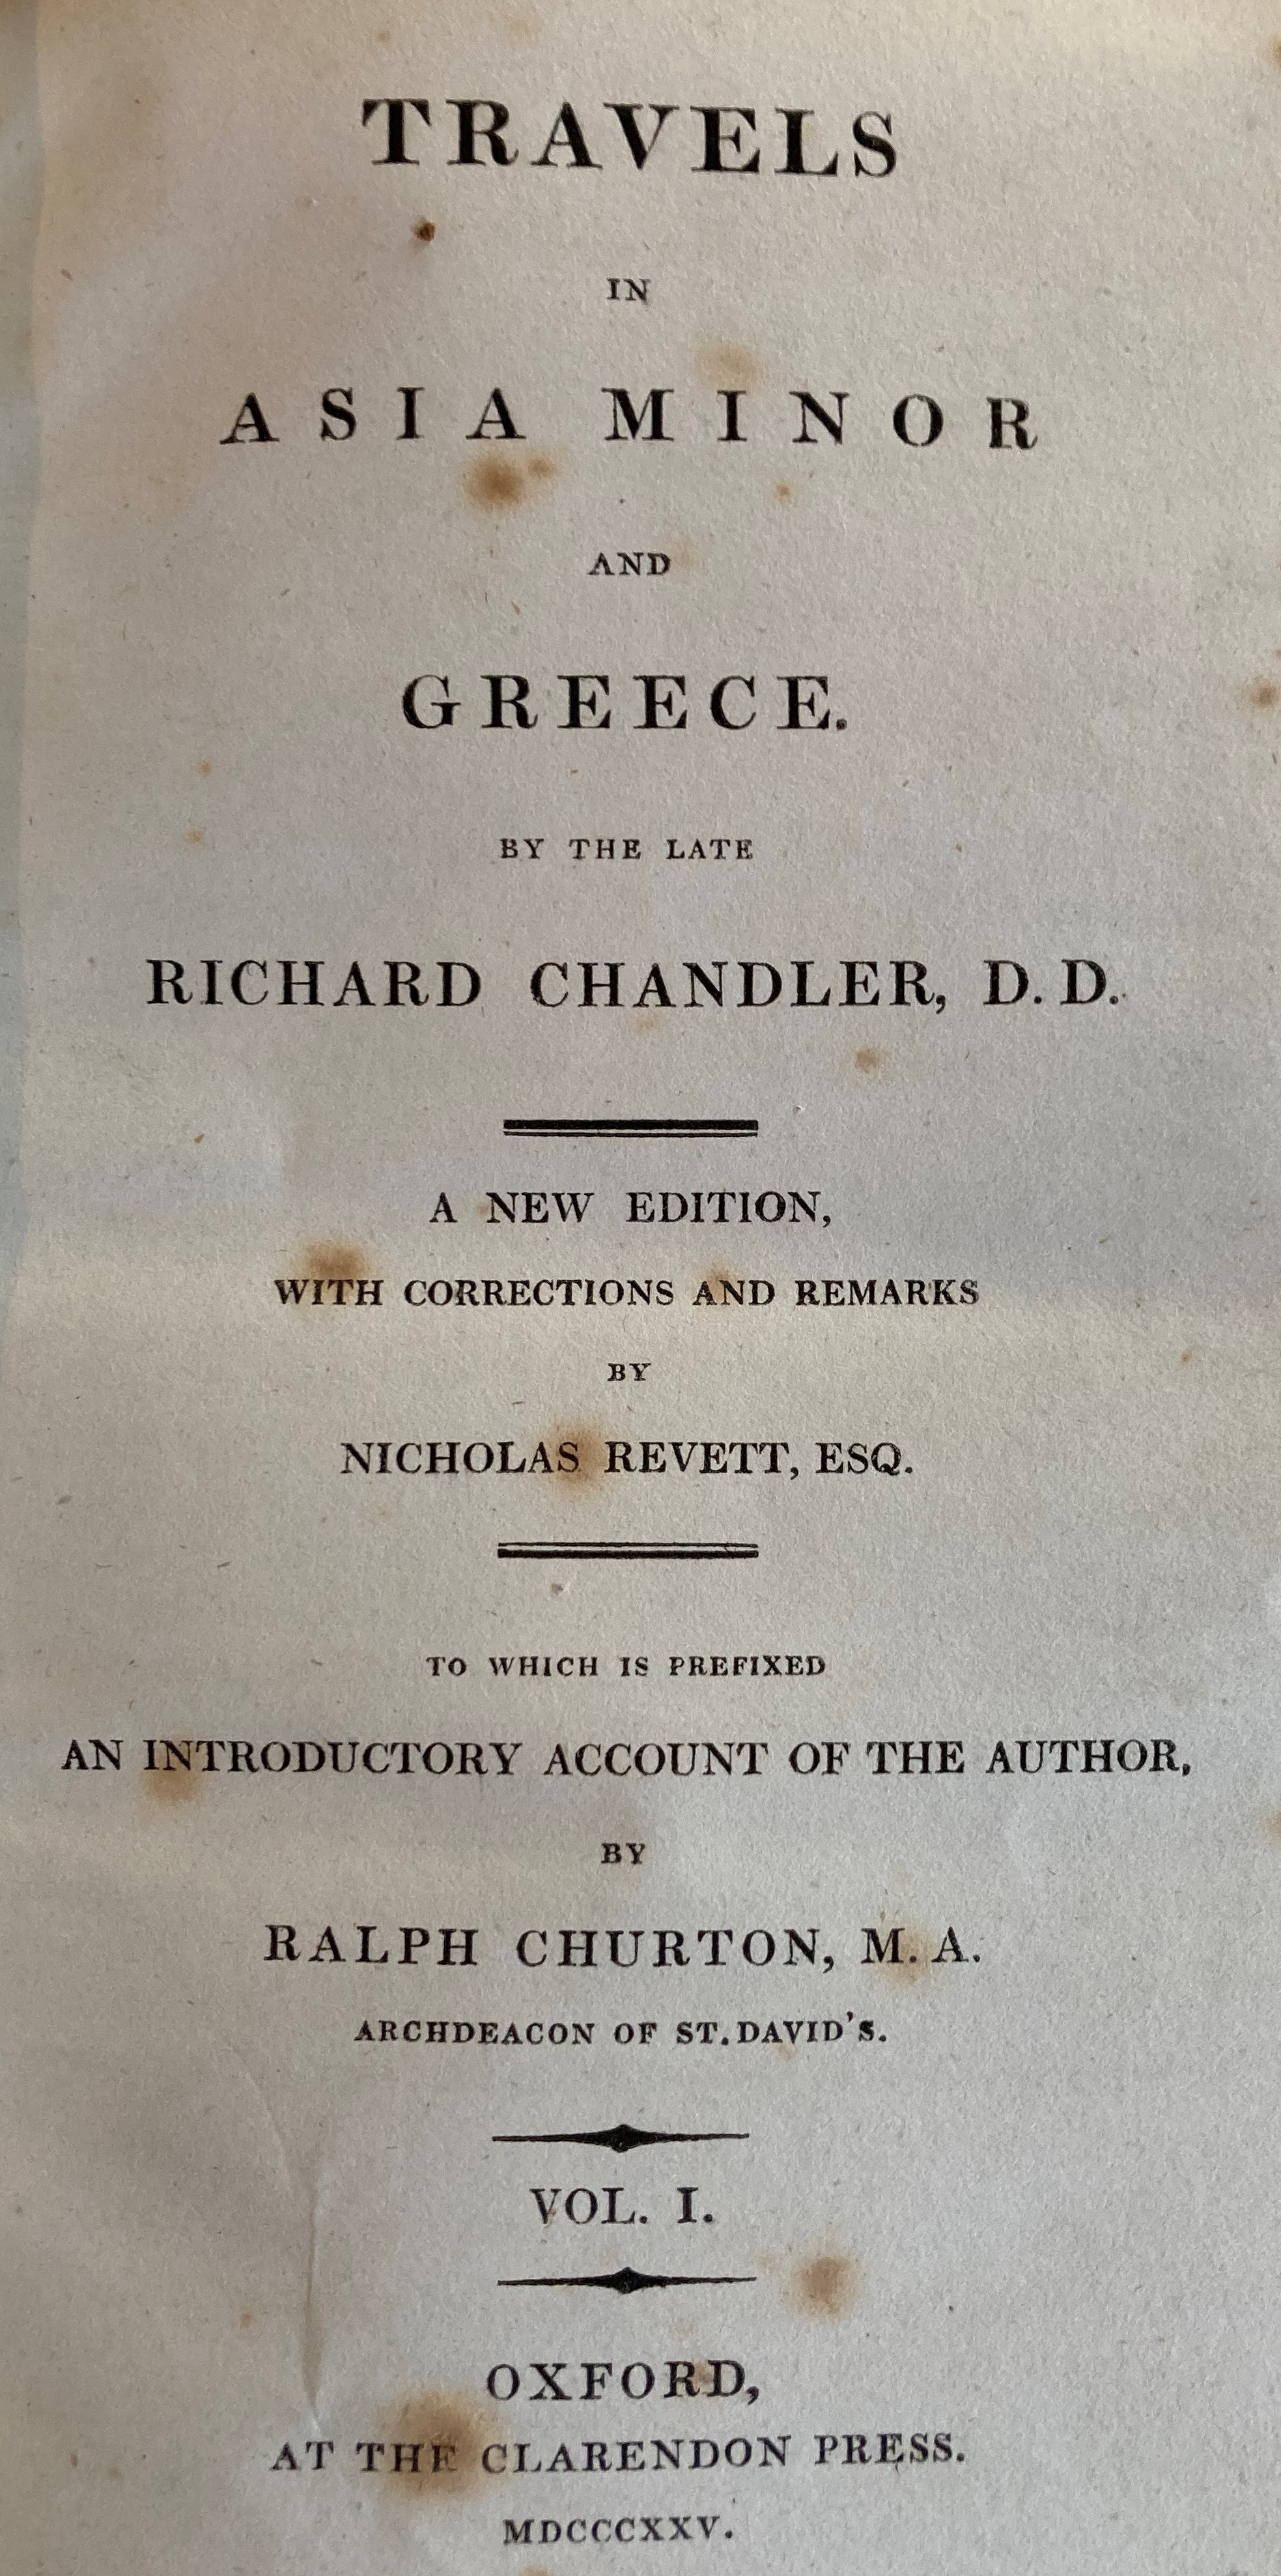 Chandler (Richard)ÿTravels in Asia Minor and Greece, 2 vols. Oxford (Clarendon Press) 1825.ÿNew